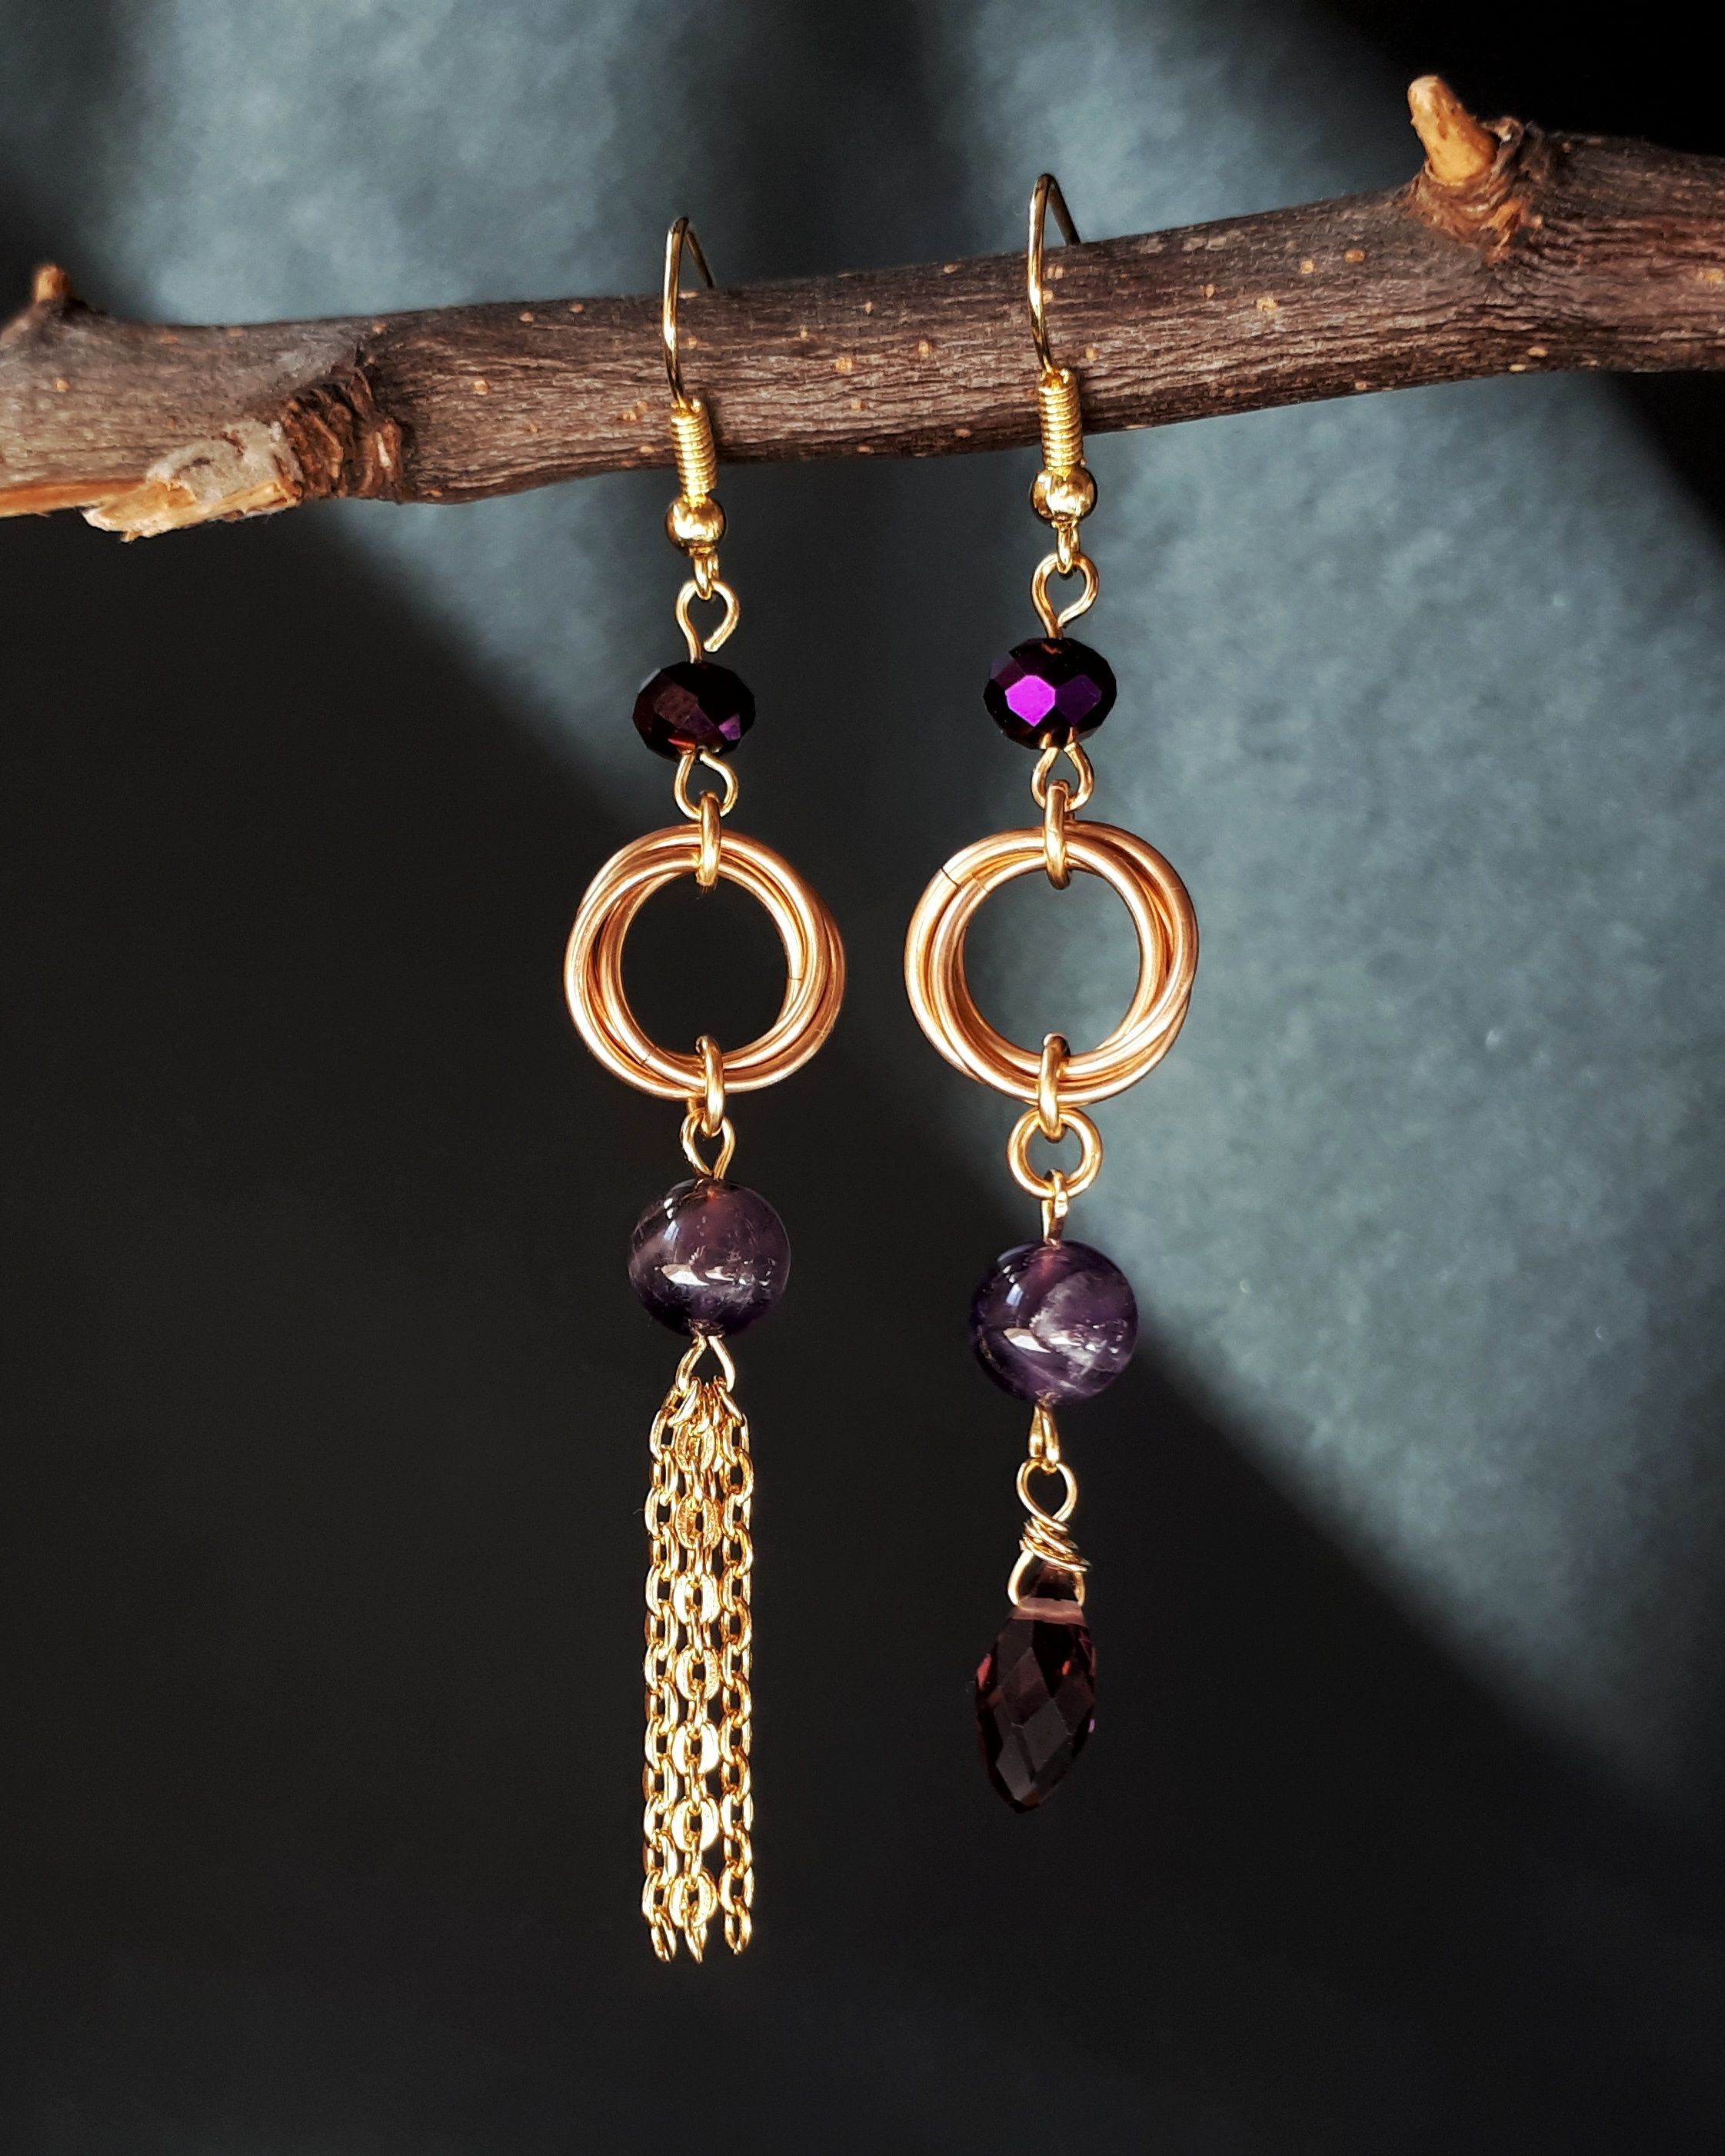 pebble earrings gold jewellery oliver camryn drop asymmetric bonas